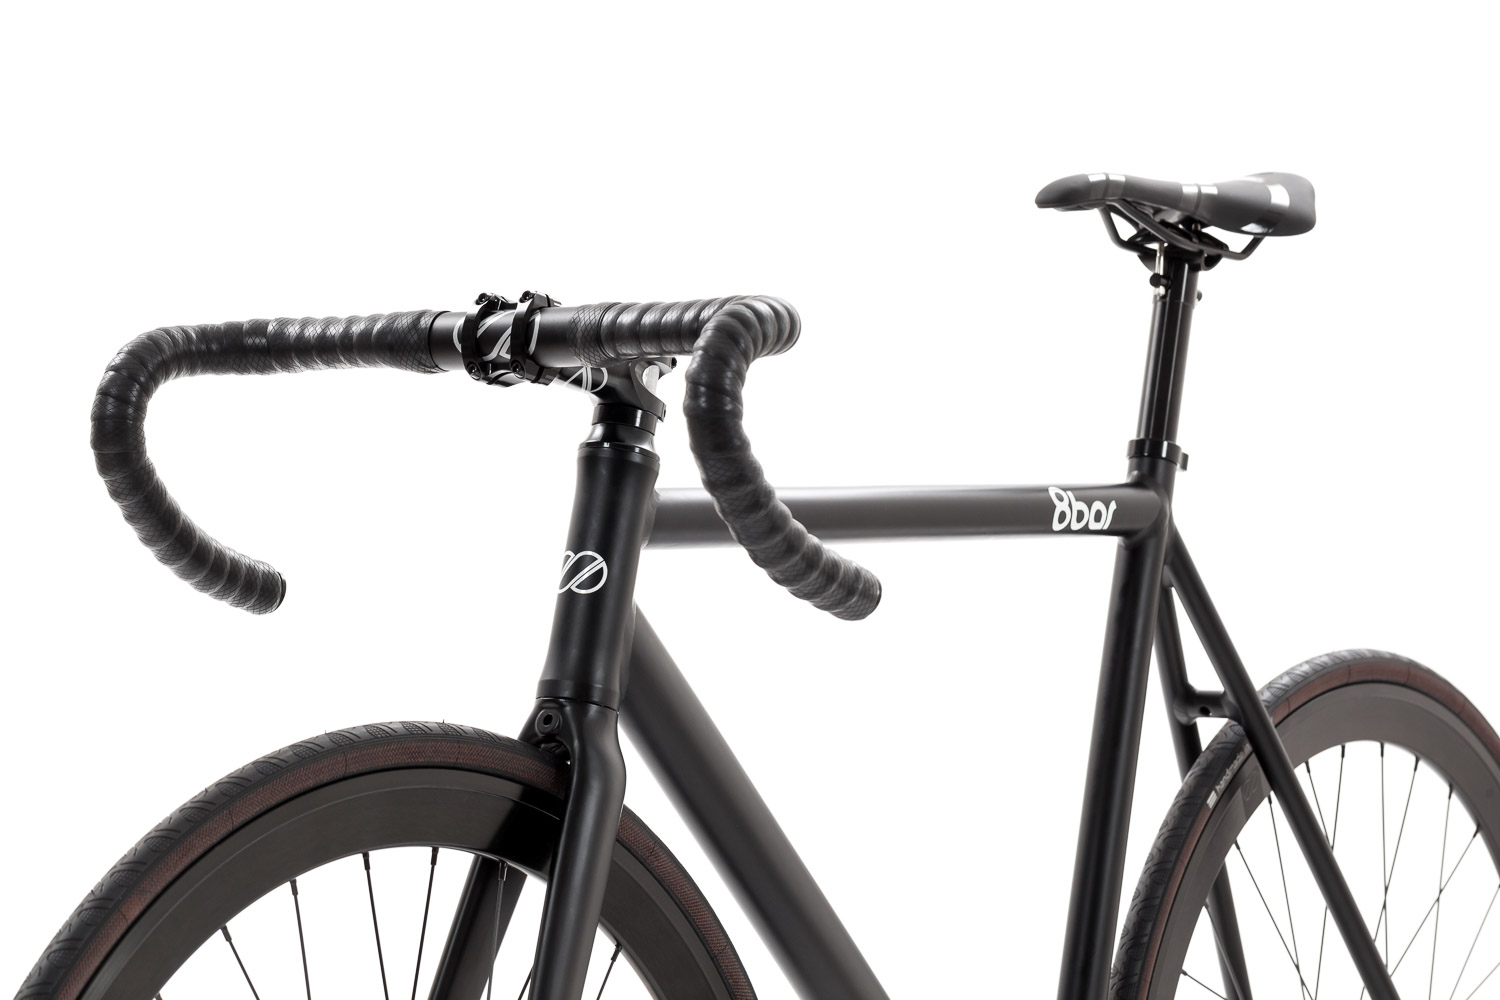 8bar-fhain-pro-black-drop-fixie-fixed-gear-2